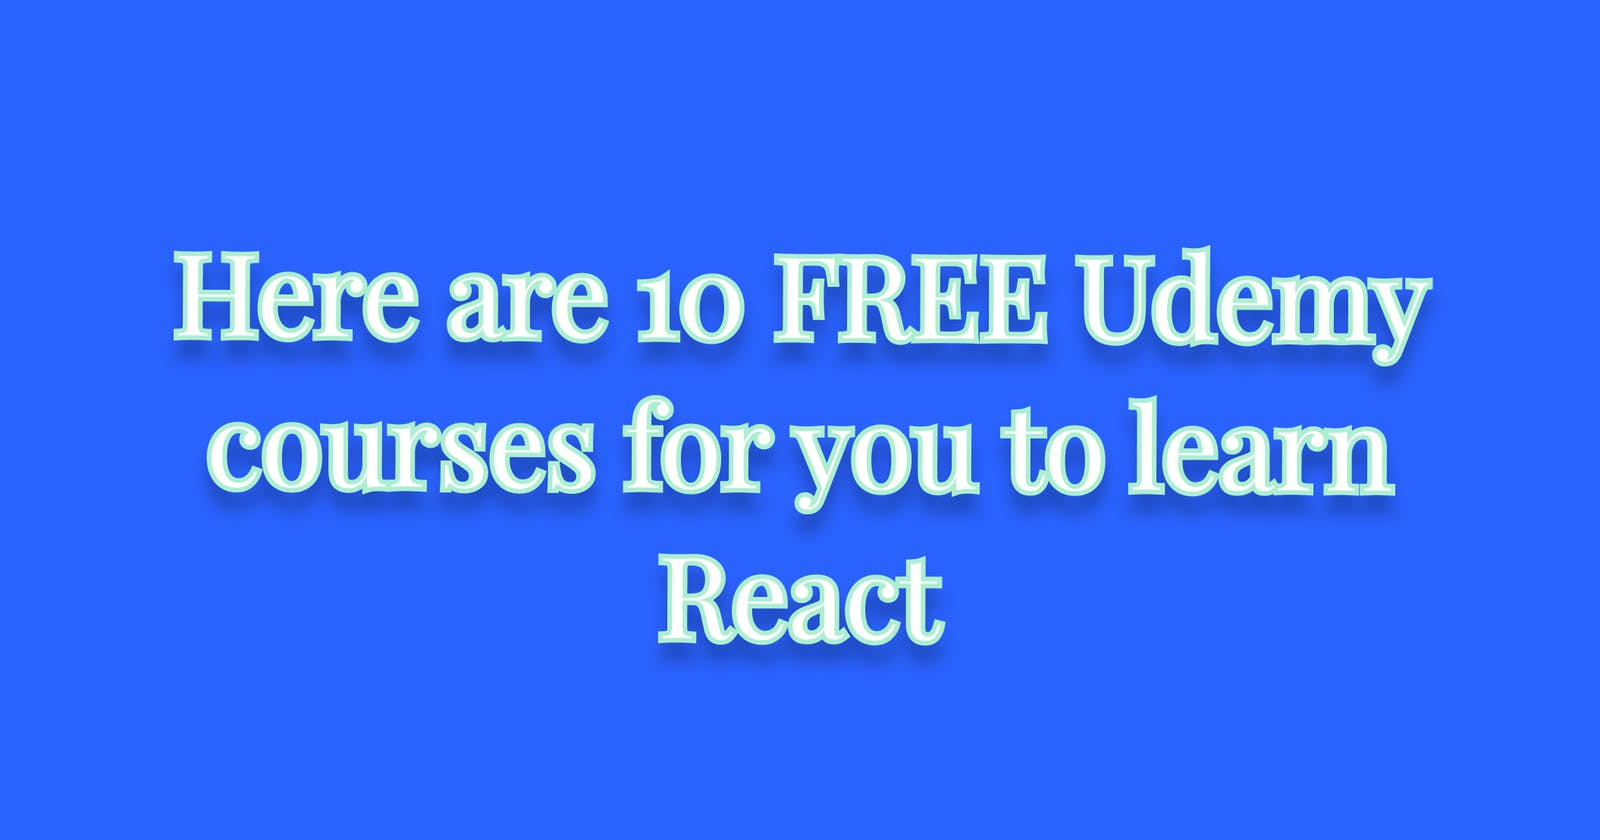 Here are 10 FREE Udemy courses for you to learn React